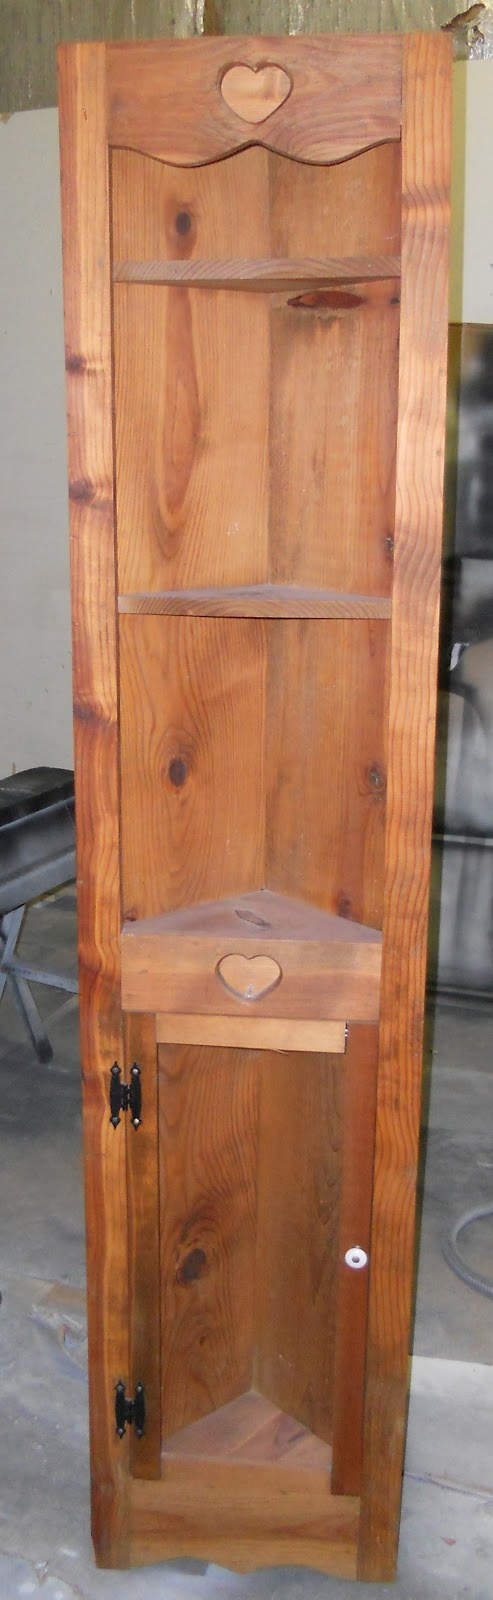 createinspire}: French Country Corner Cabinet